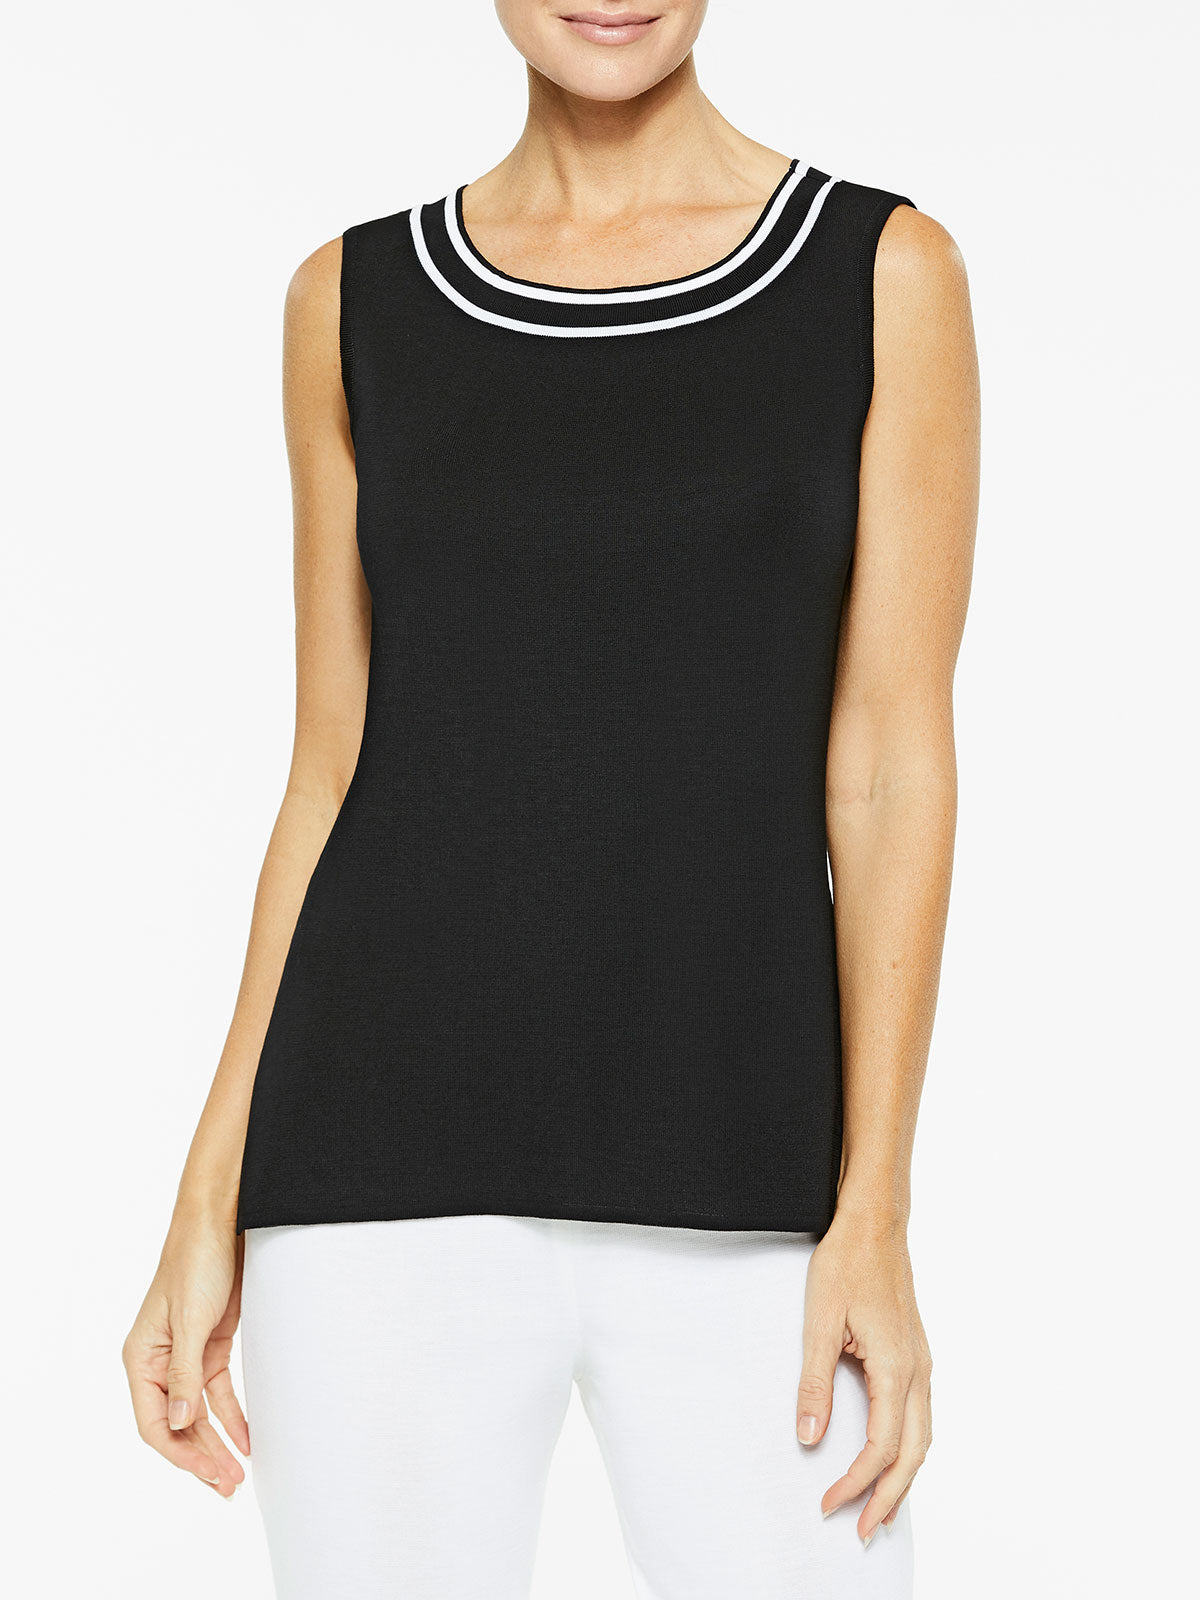 Contrast Stitch Classic Knit Tank Top Color Black/White